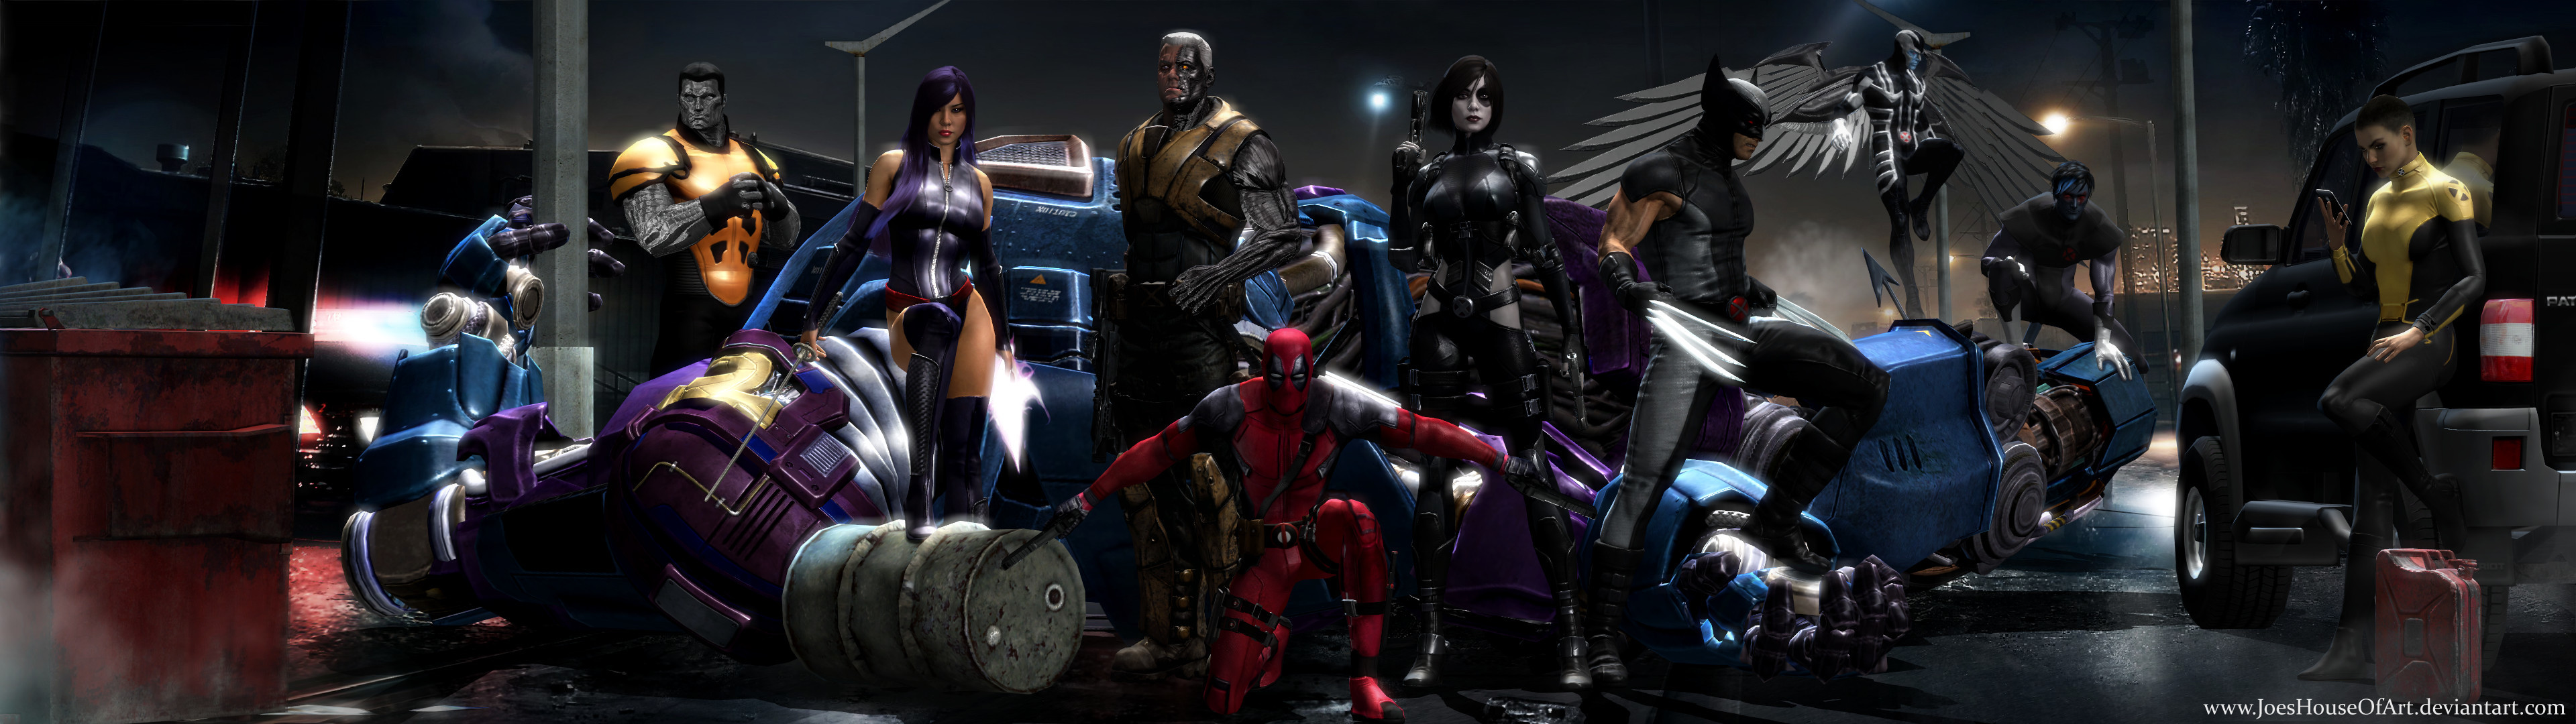 X-Force Movie Dual Screen Wallpaper by ShaunsArtHouse on .